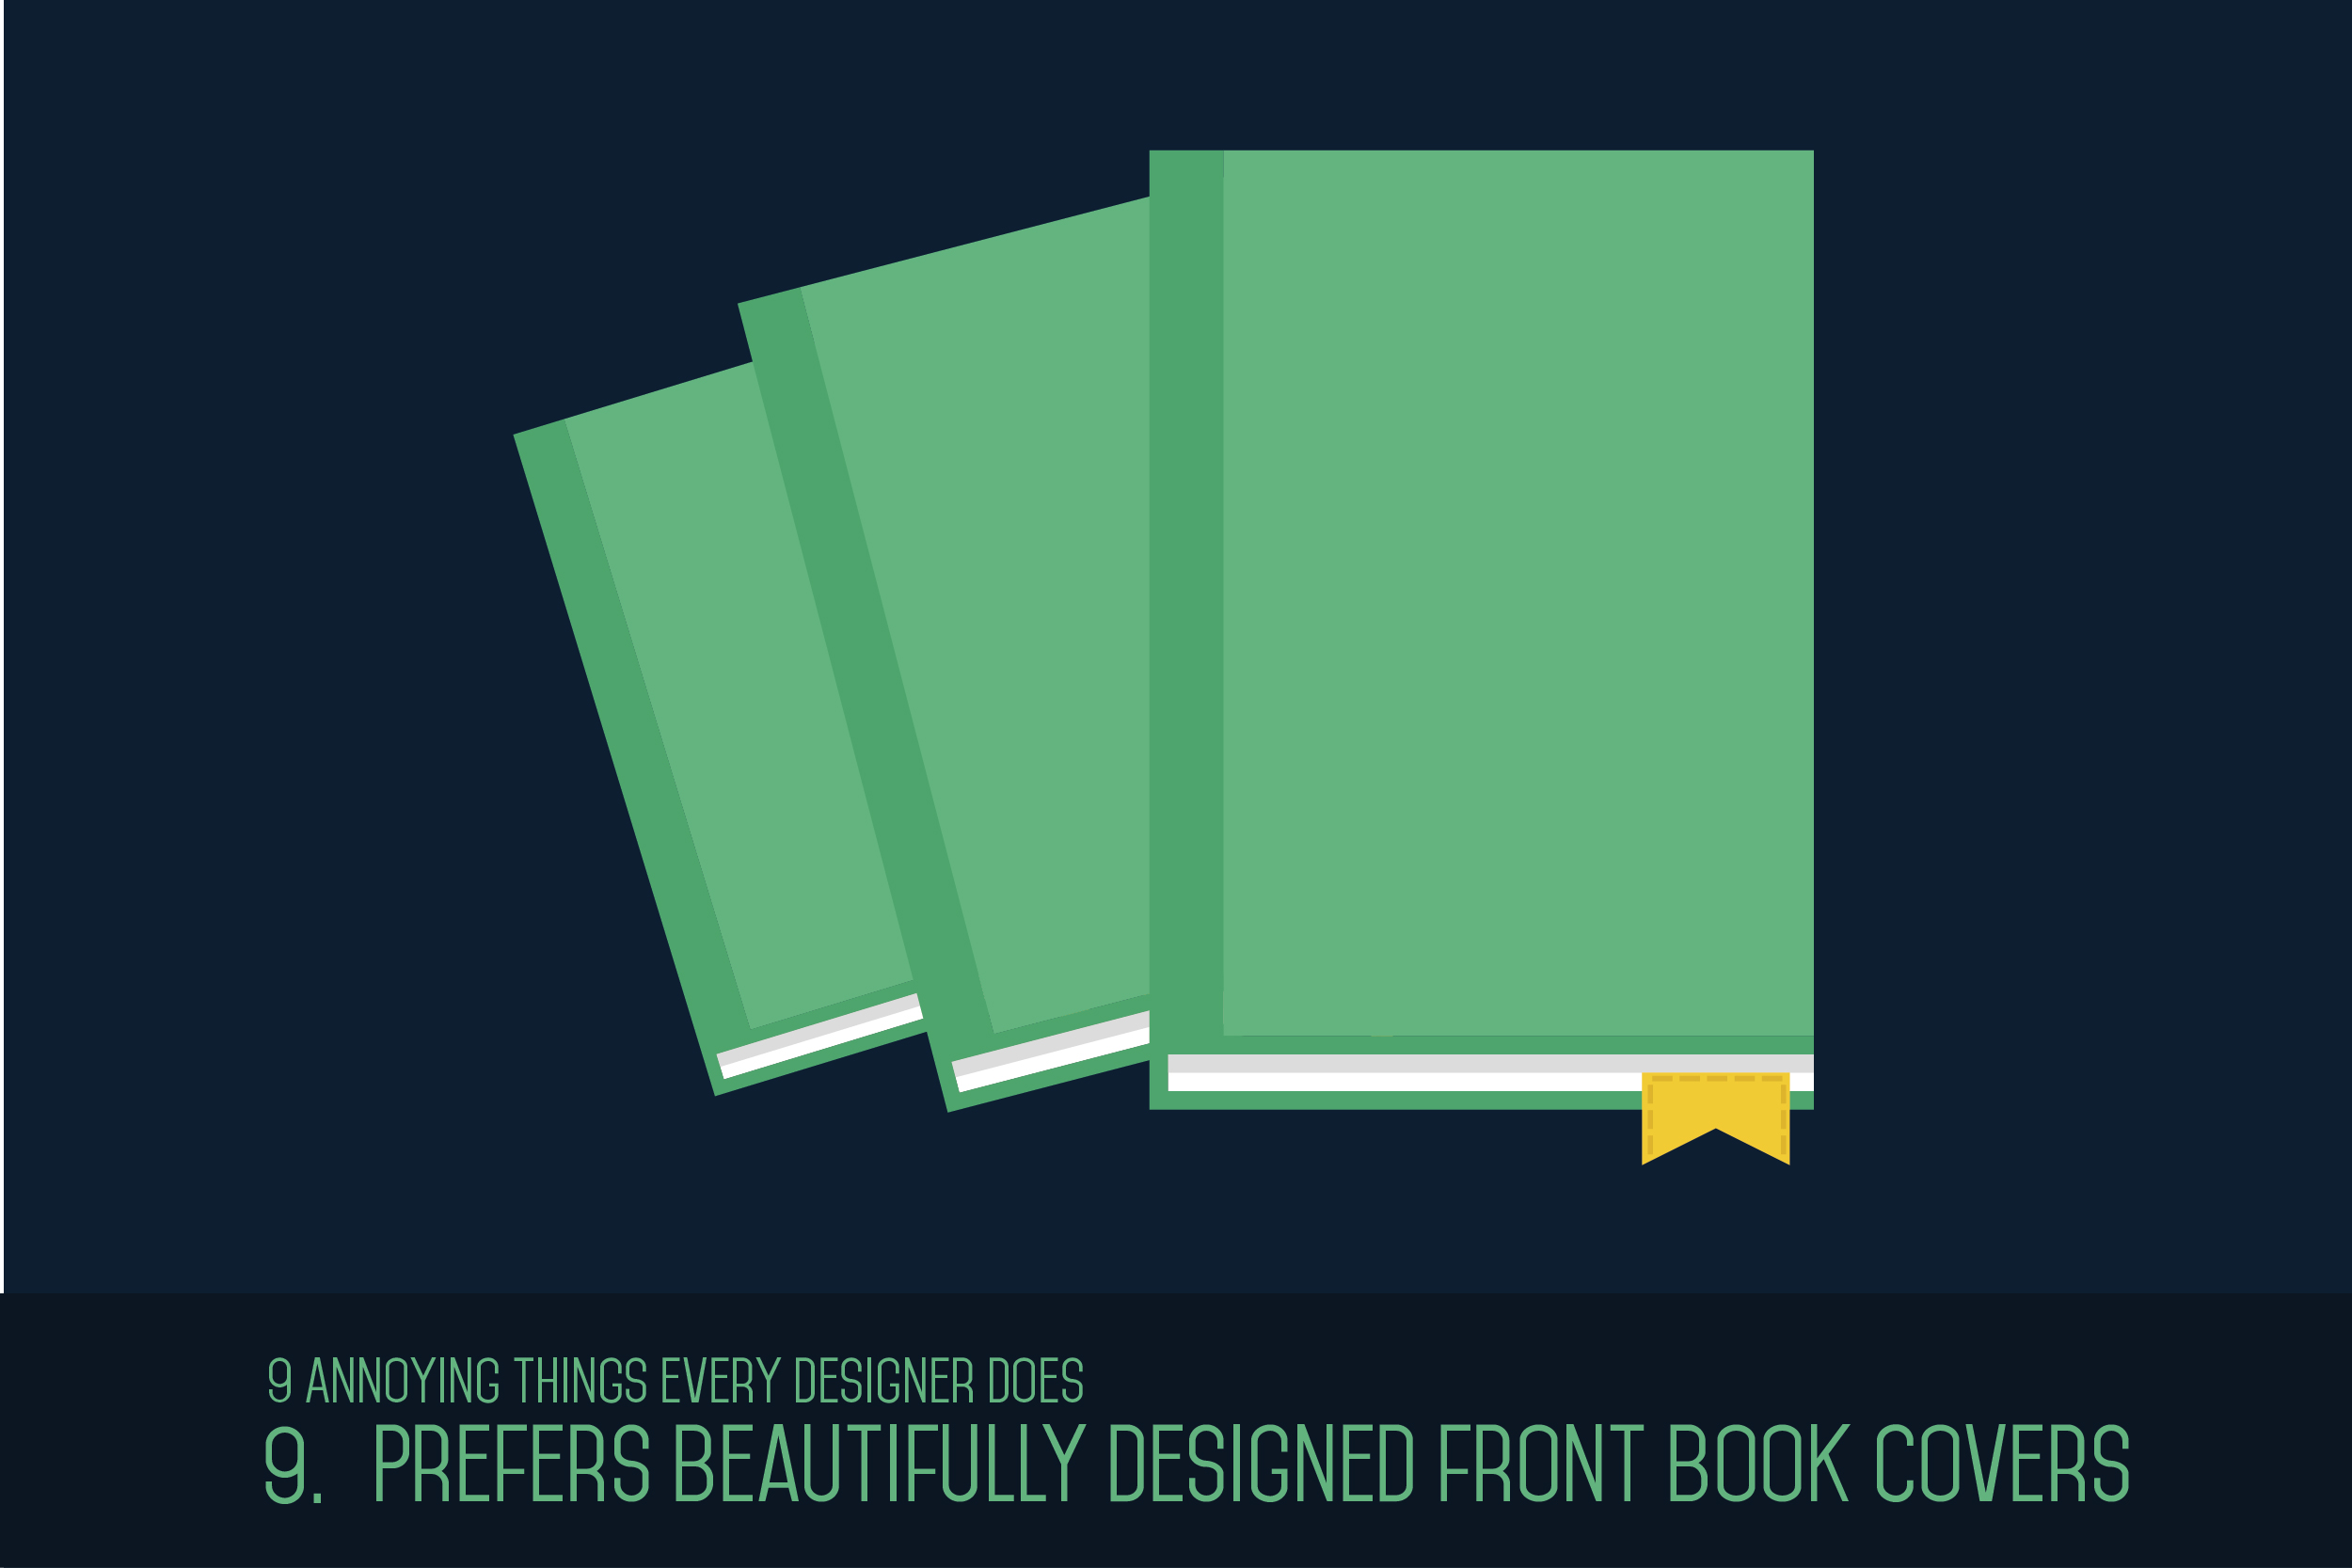 Prefers Beautifully Designed Front Book Covers